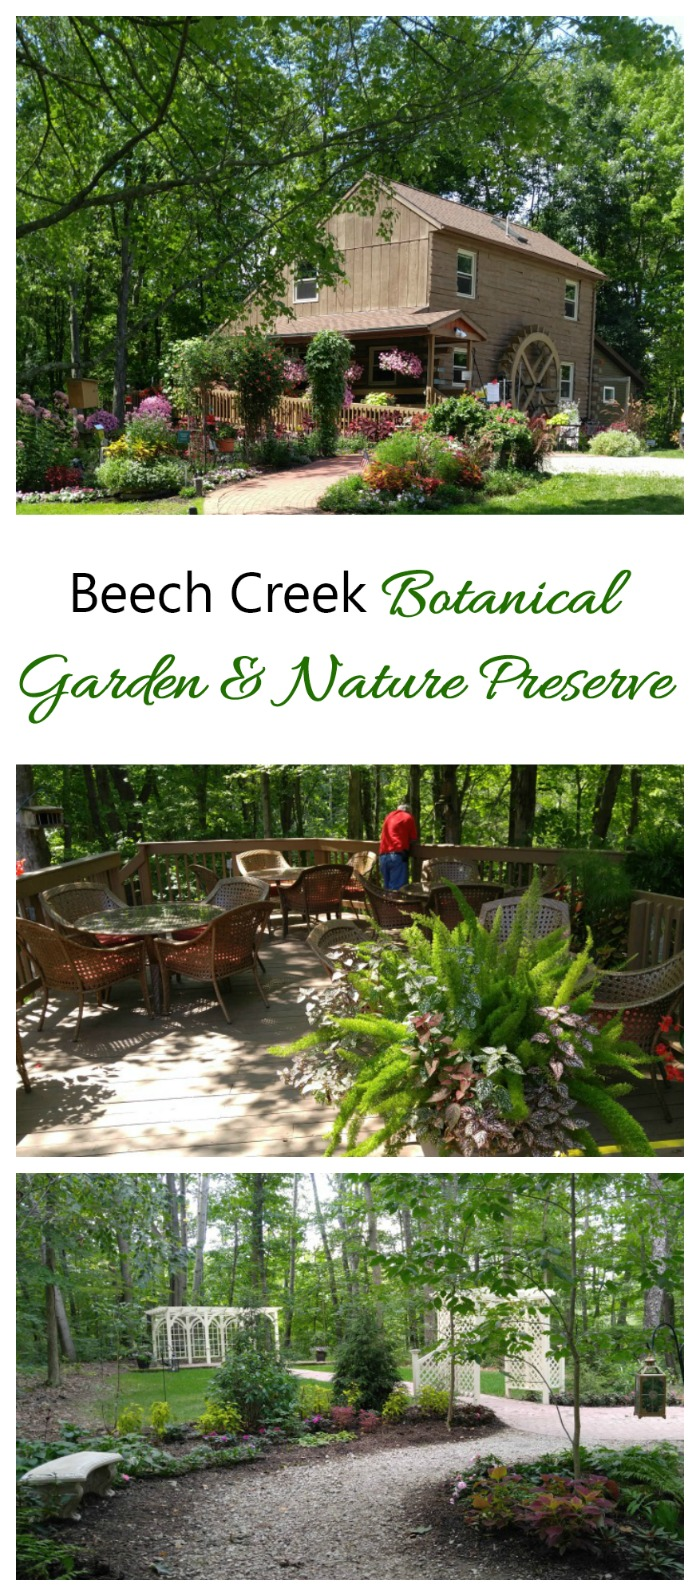 Beech Creek Botanical Garden is a wonderful place to teach children about the joys of gardening in a hands on environment. #botanical gardens #gardentours